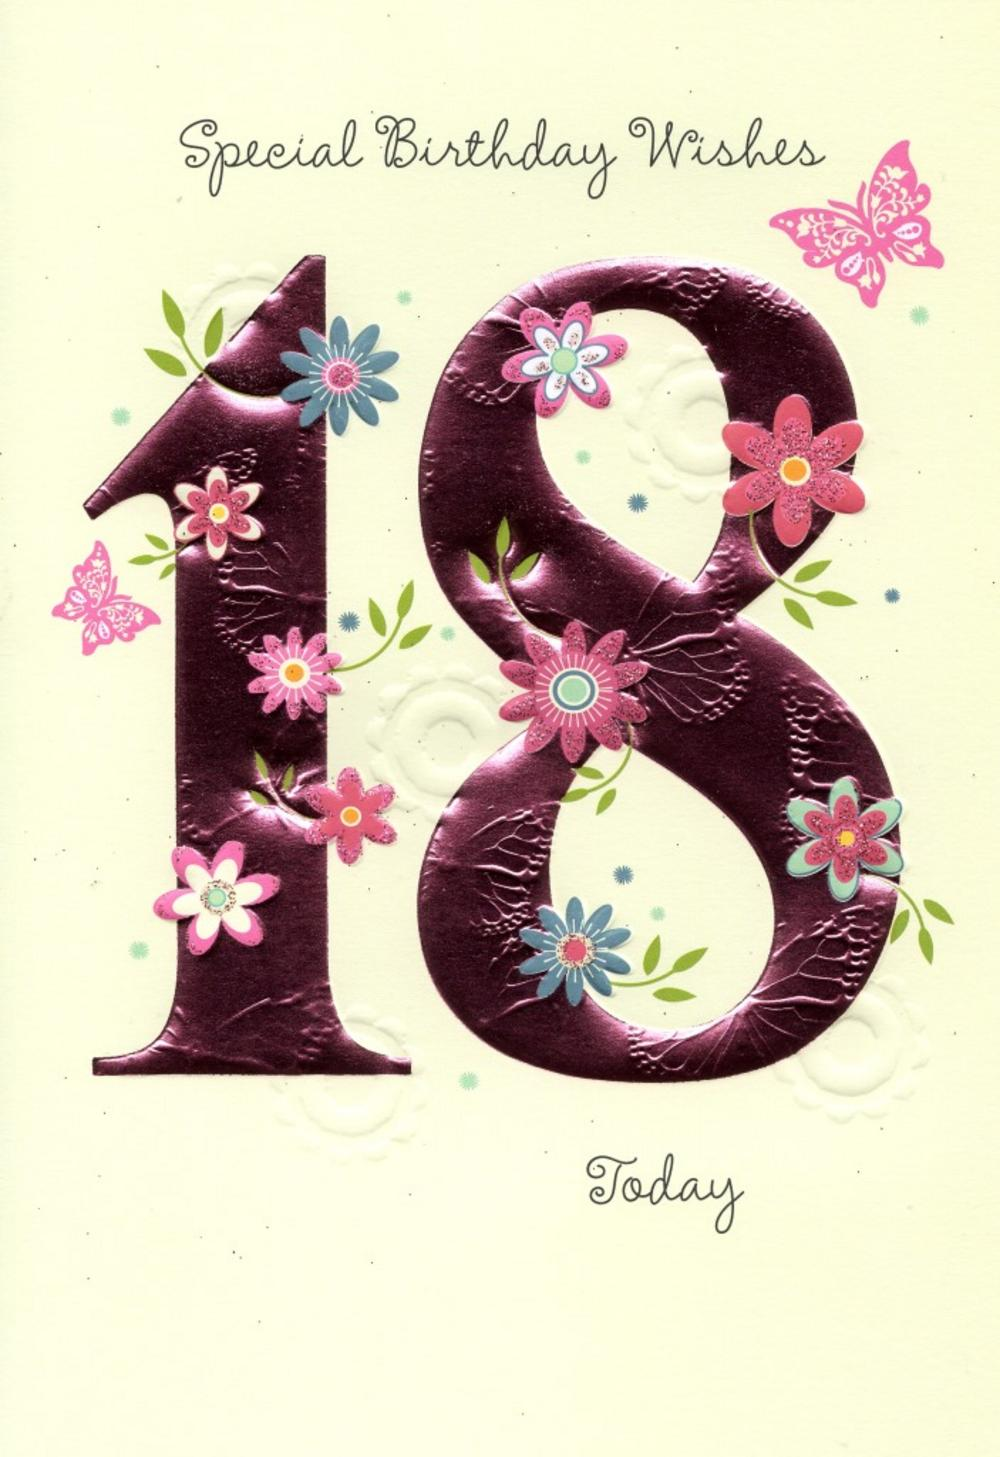 18th birthday wishes messages and greeting cards 9 happy birthday 18th birthday wishes messages and greeting cards kristyandbryce Choice Image